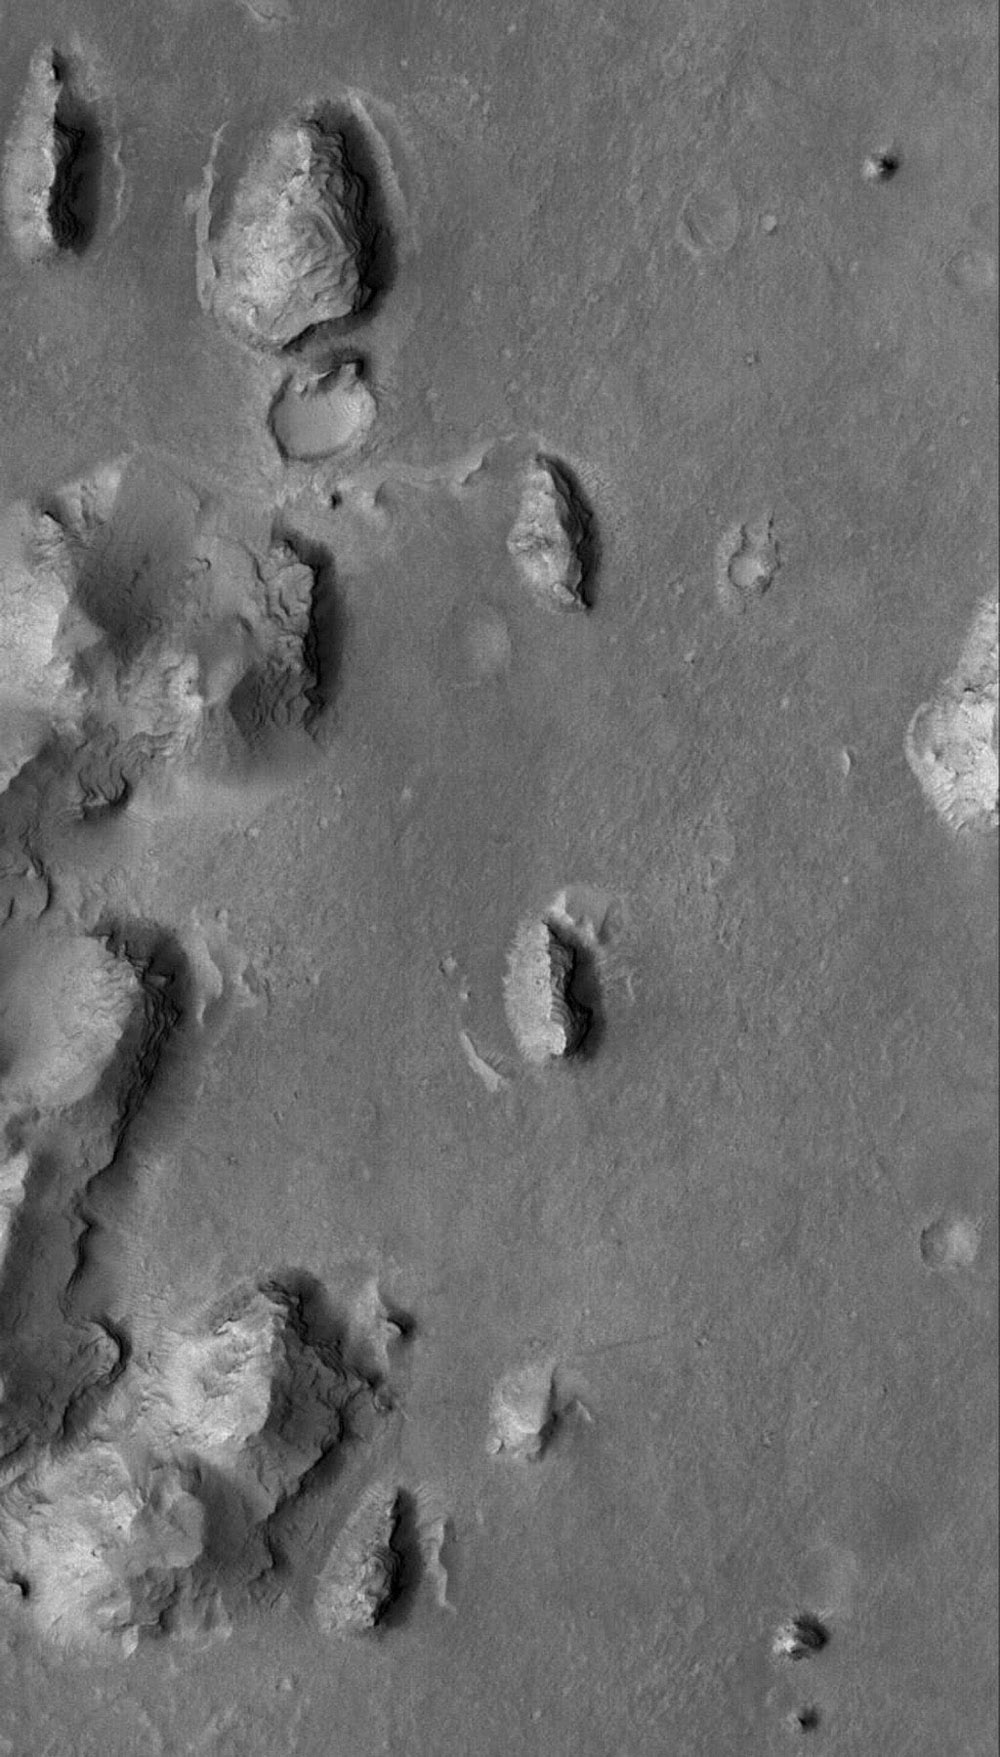 This image from NASA's Mars Global Surveyor shows layered buttes, knobs, and other landforms exposed by erosion in the Aeolis region of Mars.